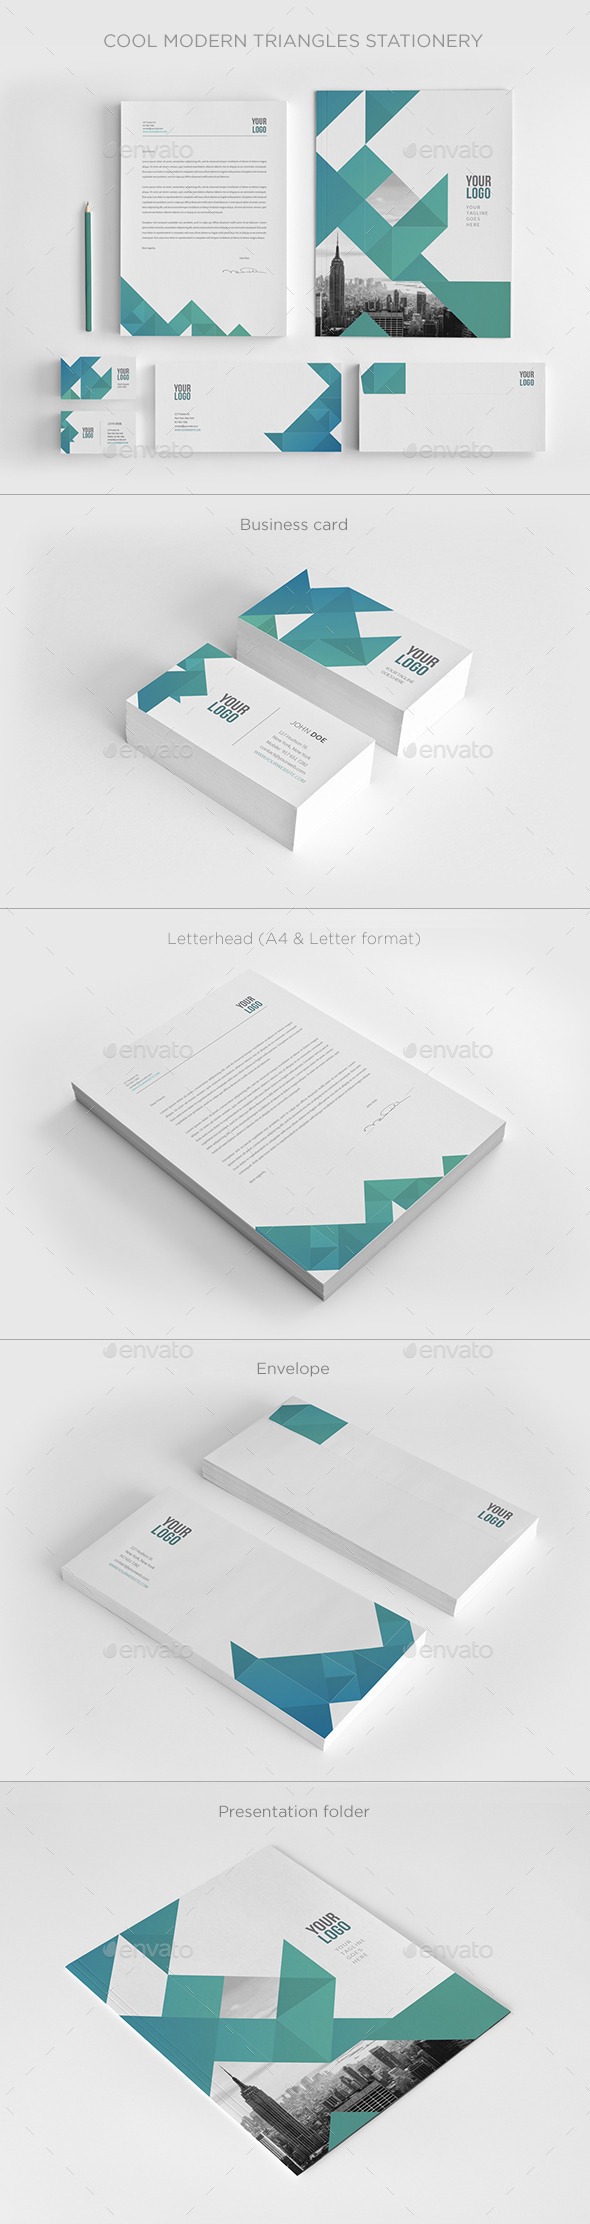 Cool Modern Triangles Stationery - Stationery Print Templates